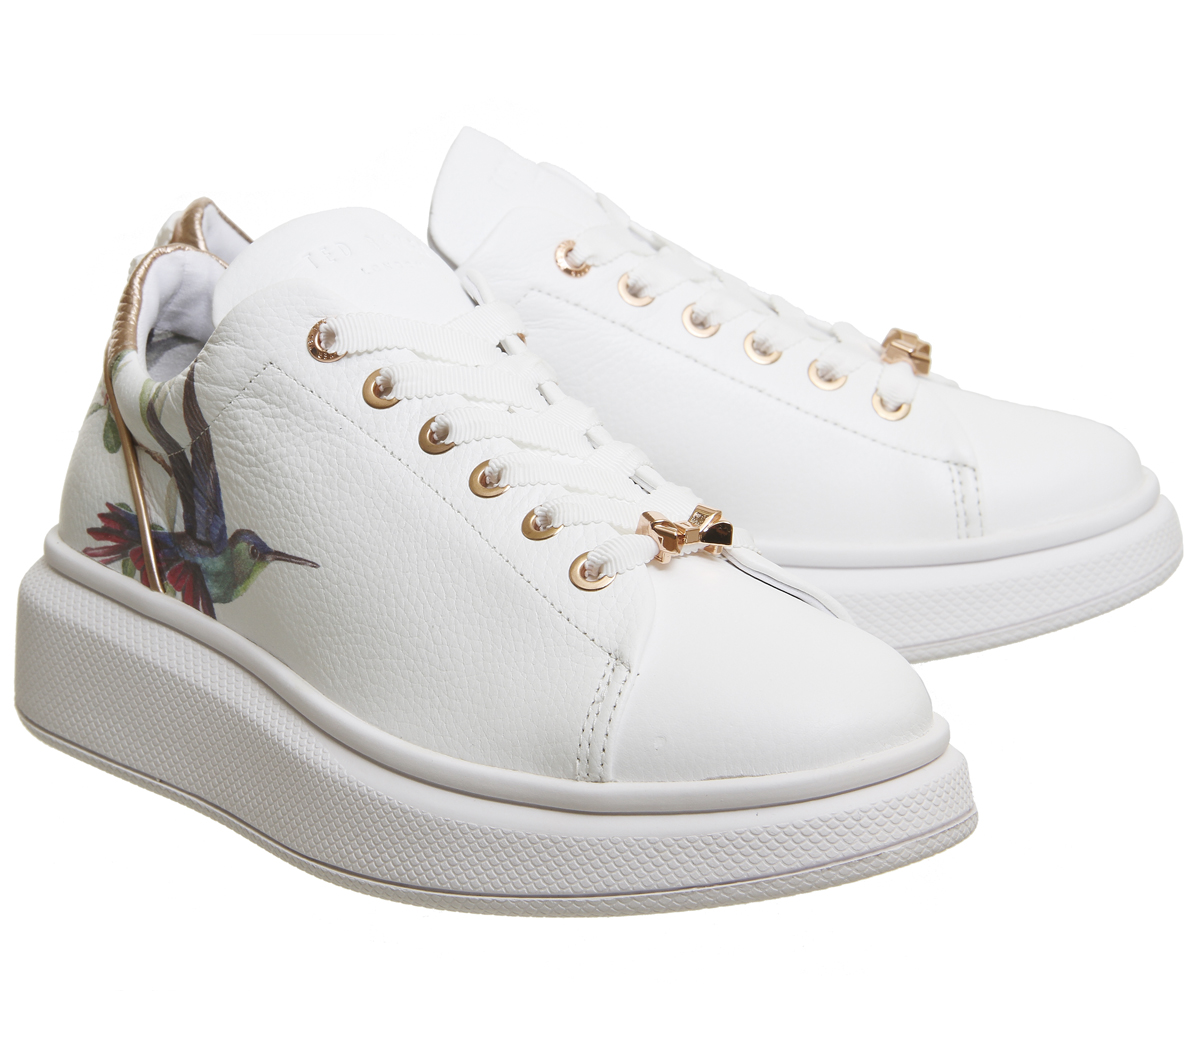 96e80b6fd5a Womens Ted Baker Ailbe Sneakers HIGHGROVE HUMMINGBIRD Trainers Shoes ...